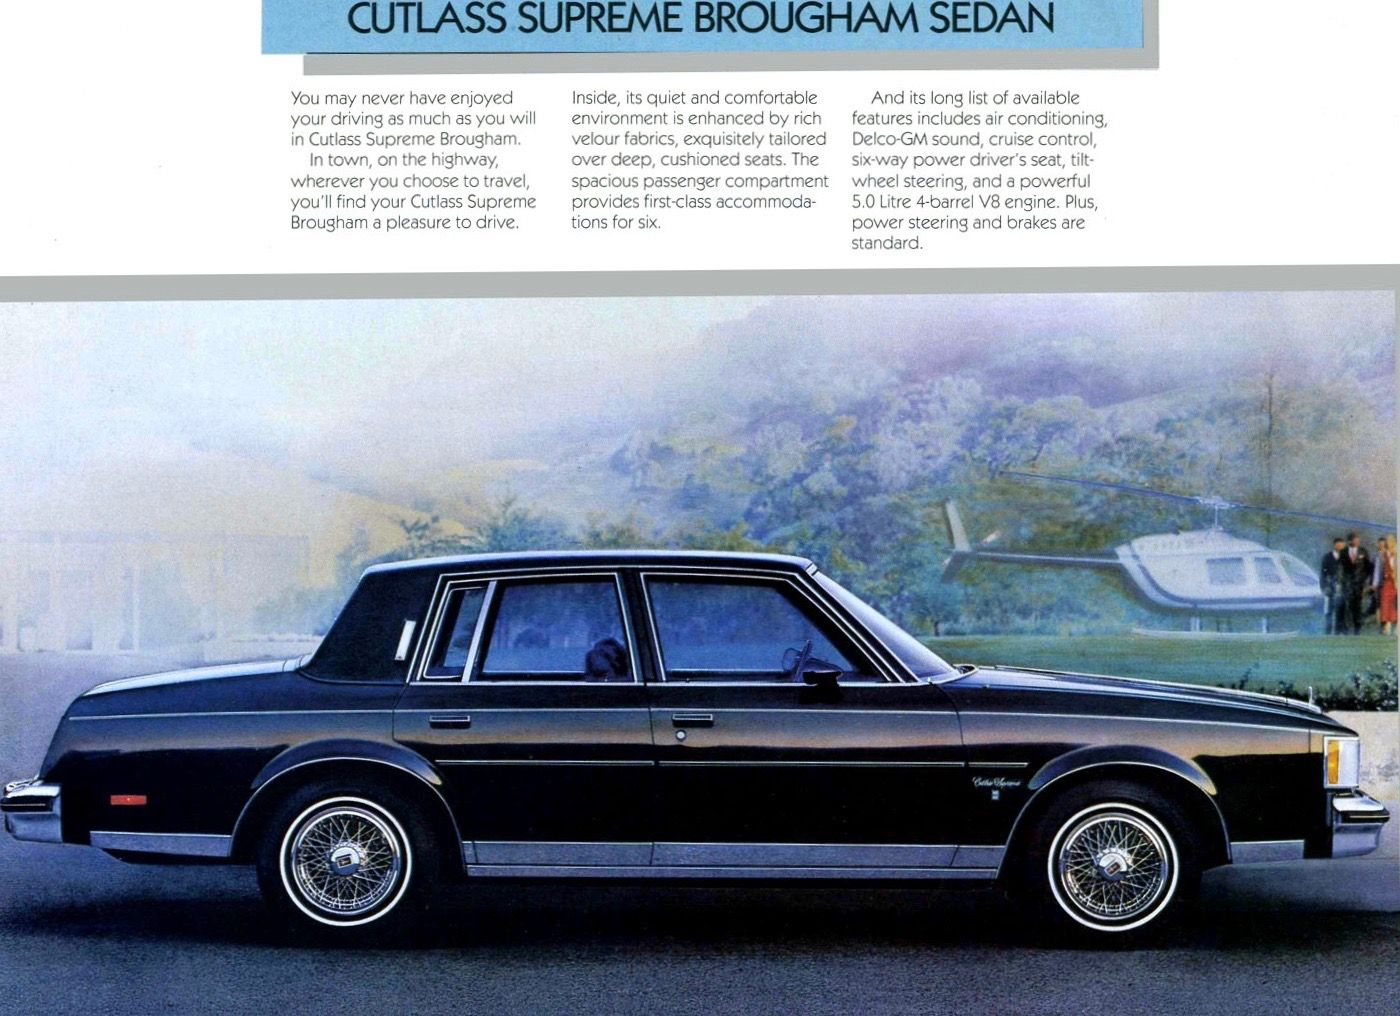 Oldsmobile Cutlass Supreme Brougham Sedan Gm Cars